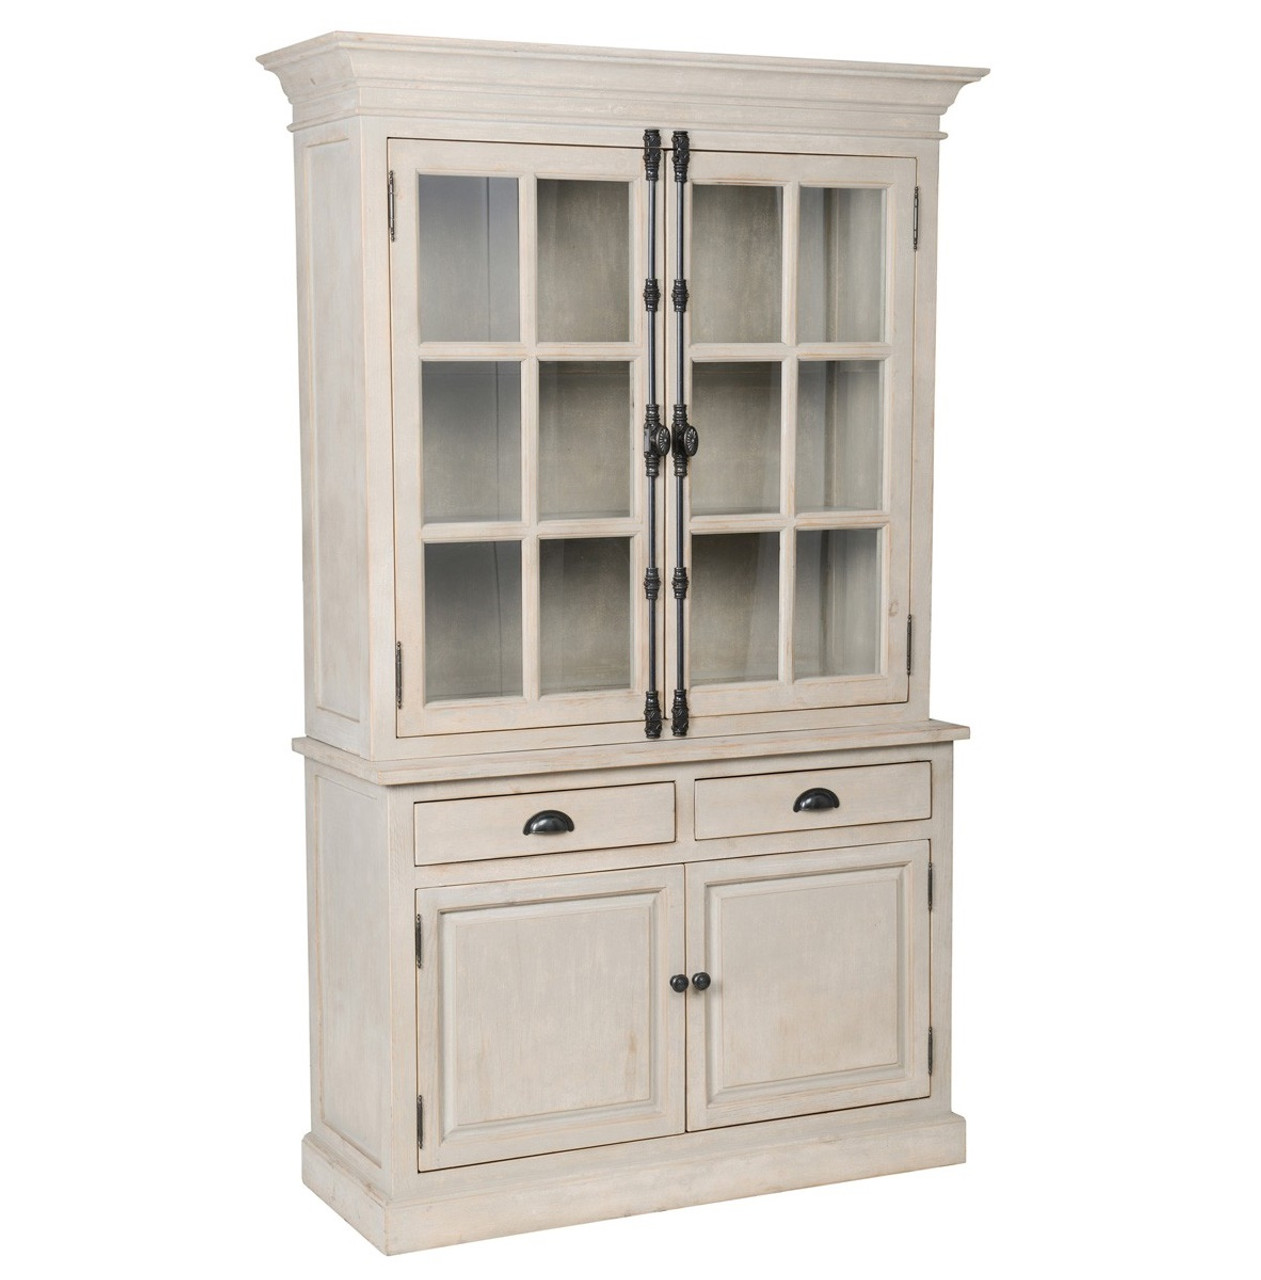 Chateau Solid Wood 2 French Door Hutch Cabinet- Antique White - Chateau Solid Wood 2 French Door Hutch Cabinet- Antique White Zin Home